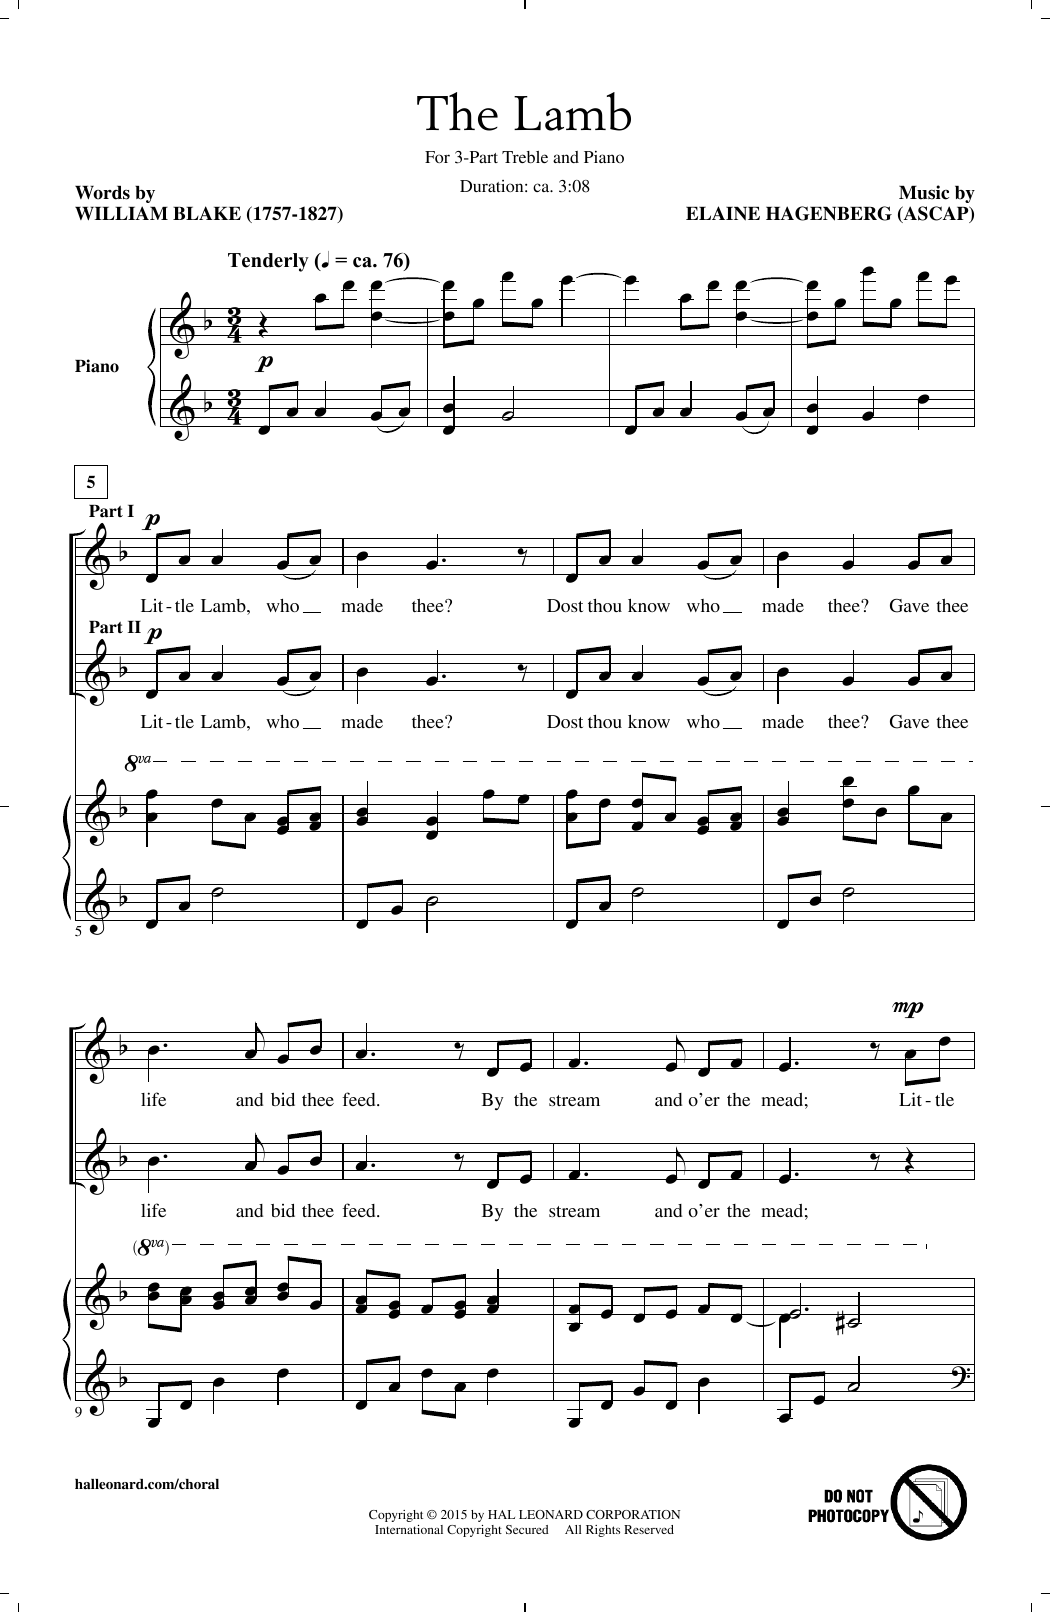 The Lamb Sheet Music